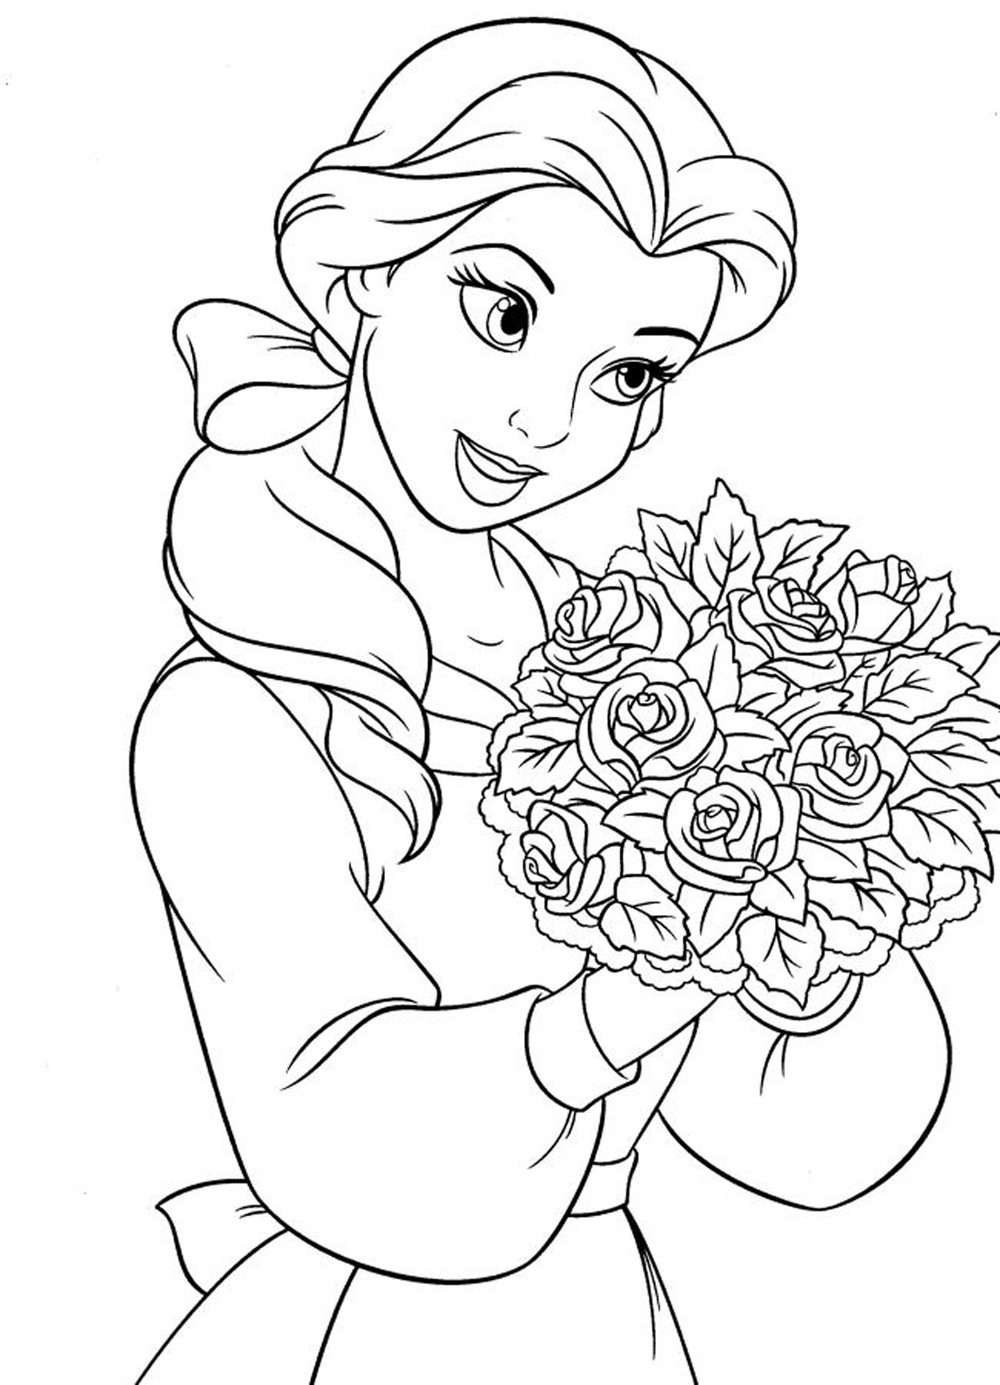 disnep coloring pages - photo#2